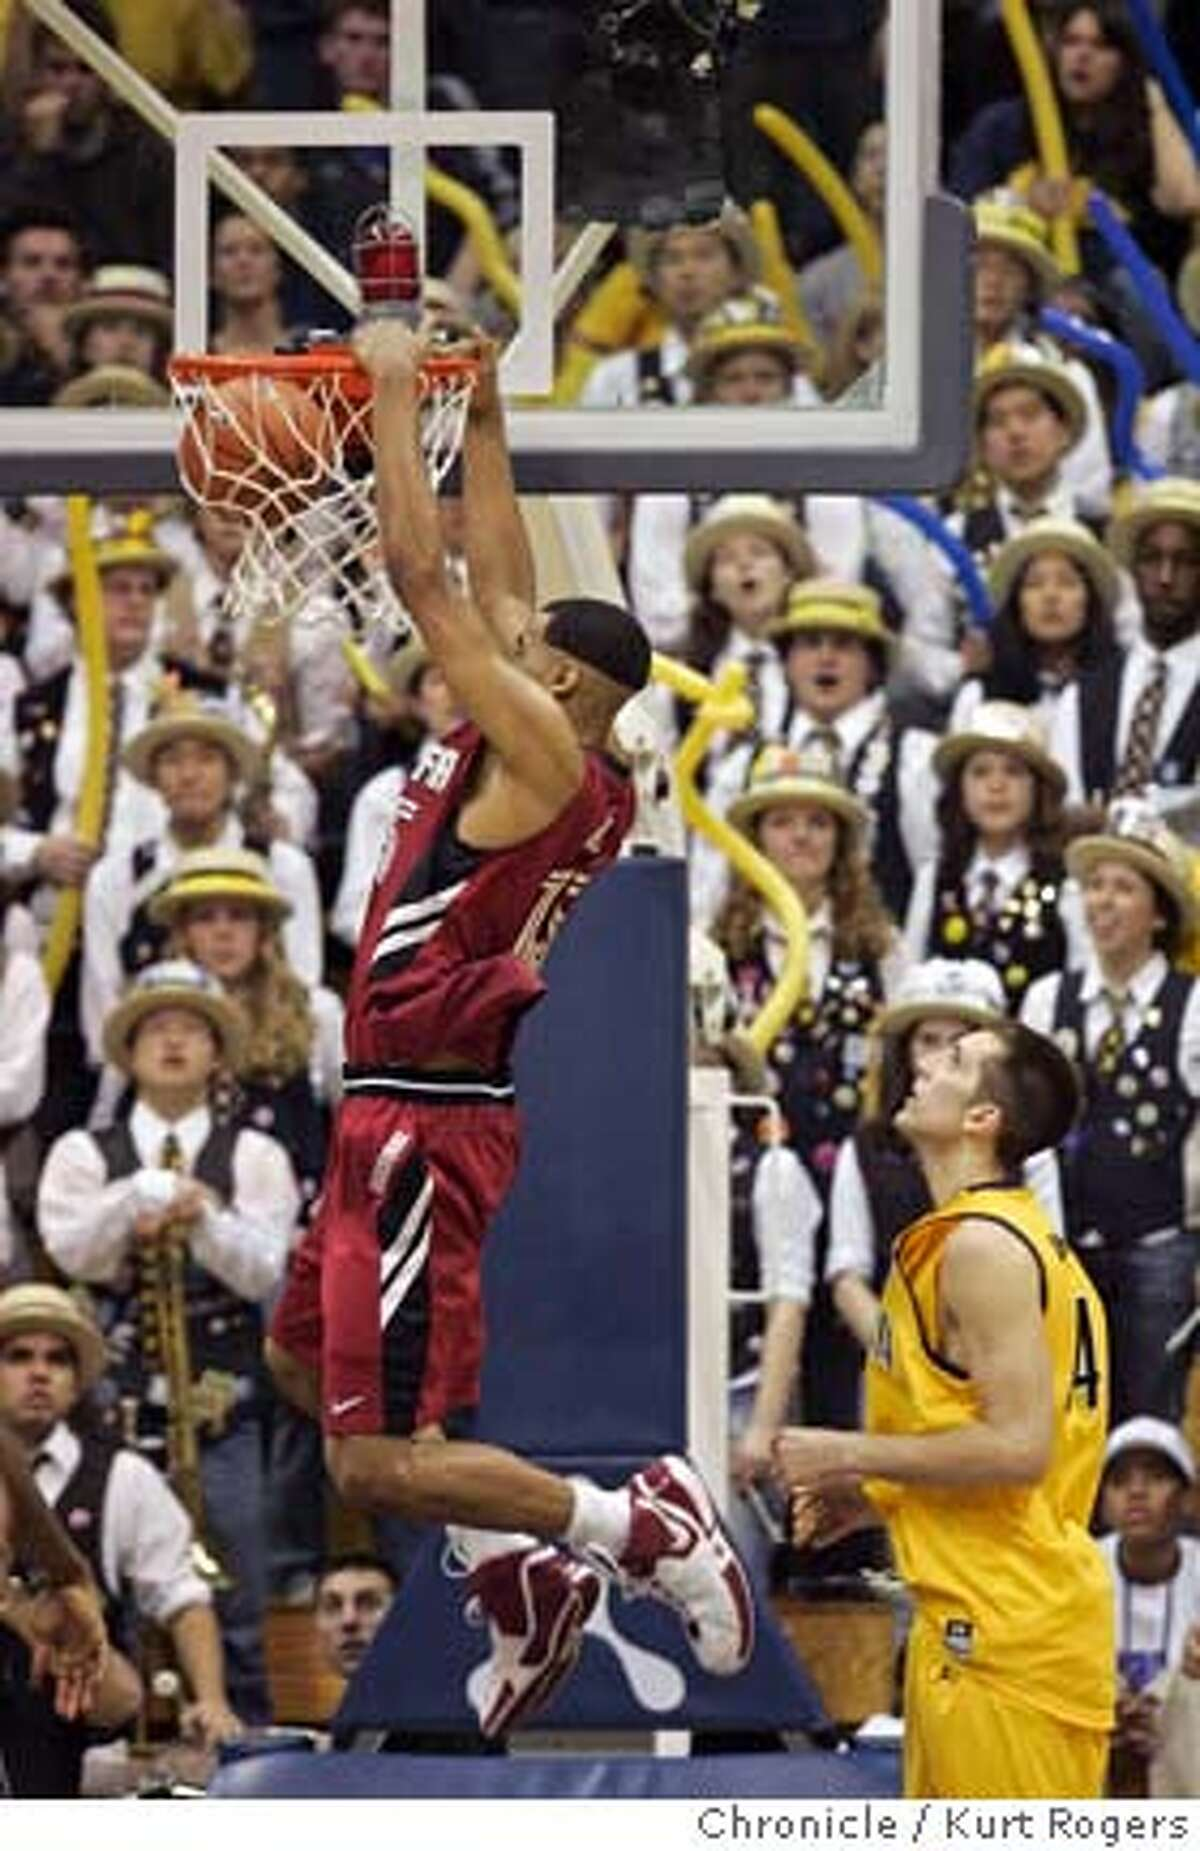 Lawrence Hill dunks the ball in front of the Cal Band as Ryan Anderson. In the second period of play Stanfiord 90 Cal 71 Stanford Cardinals vs California Golden Bears . SATURDAY, FEBRUARY 03, 2007 KURT ROGERS/THE CHRONICLE BERKELEY THE CHRONICLE SFC CAL_0953_kr.jpg Ran on: 02-04-2007 Stanfords Lawrence Hill emphatically slams in front of the Cal band while Ryan Anderson watches. Ran on: 02-04-2007 Stanfords Lawrence Hill emphatically slams in front of the Cal band while Ryan Anderson watches.